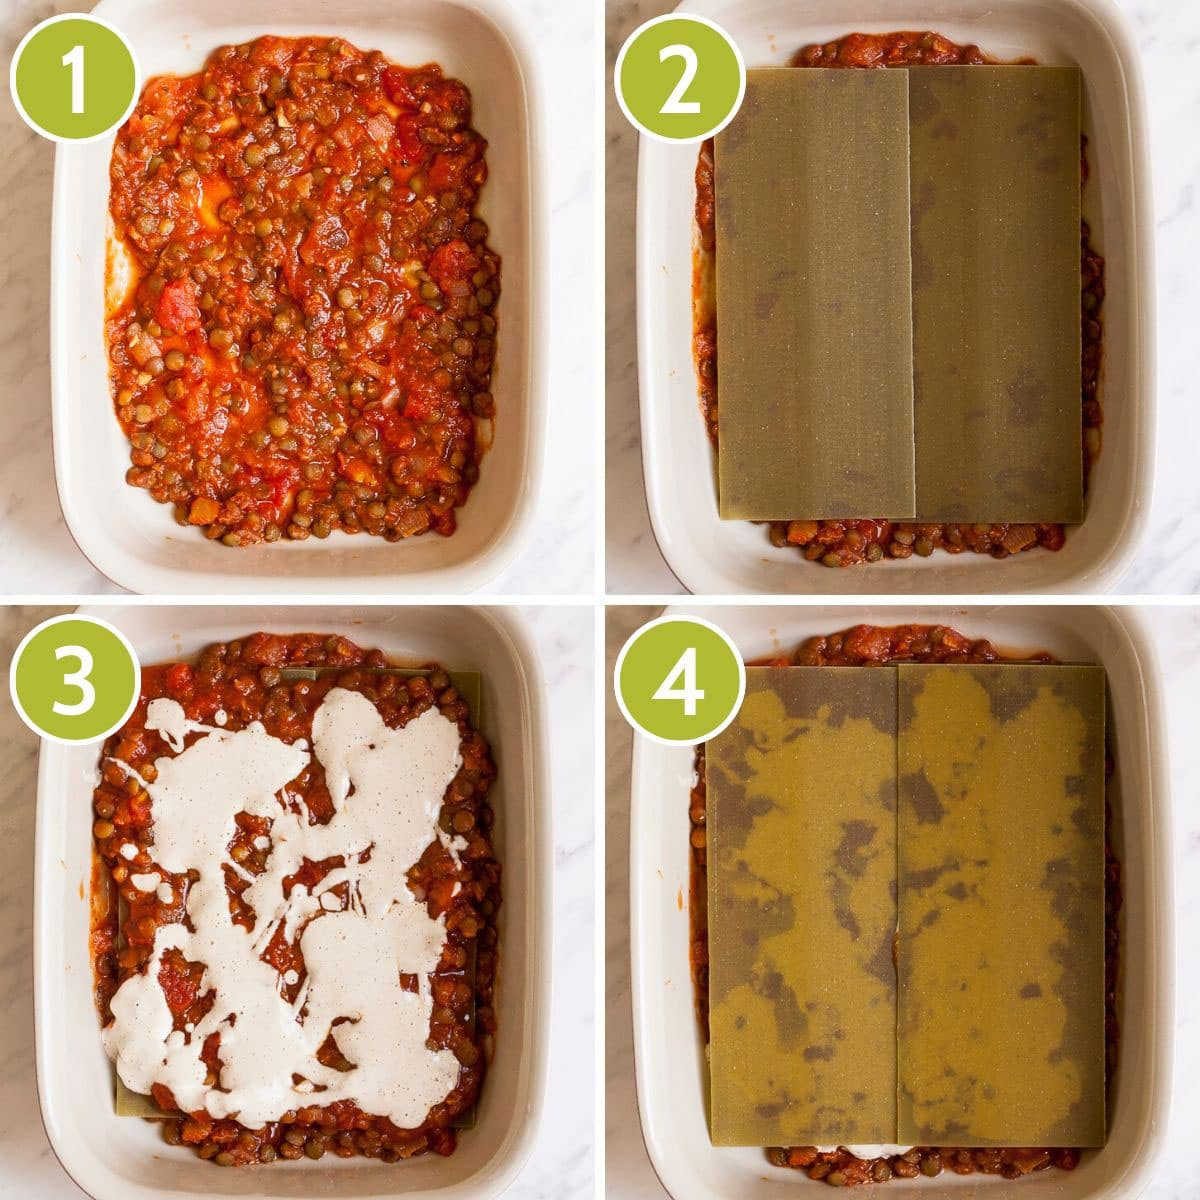 Step photos showing the different layers of a lentil lasagna